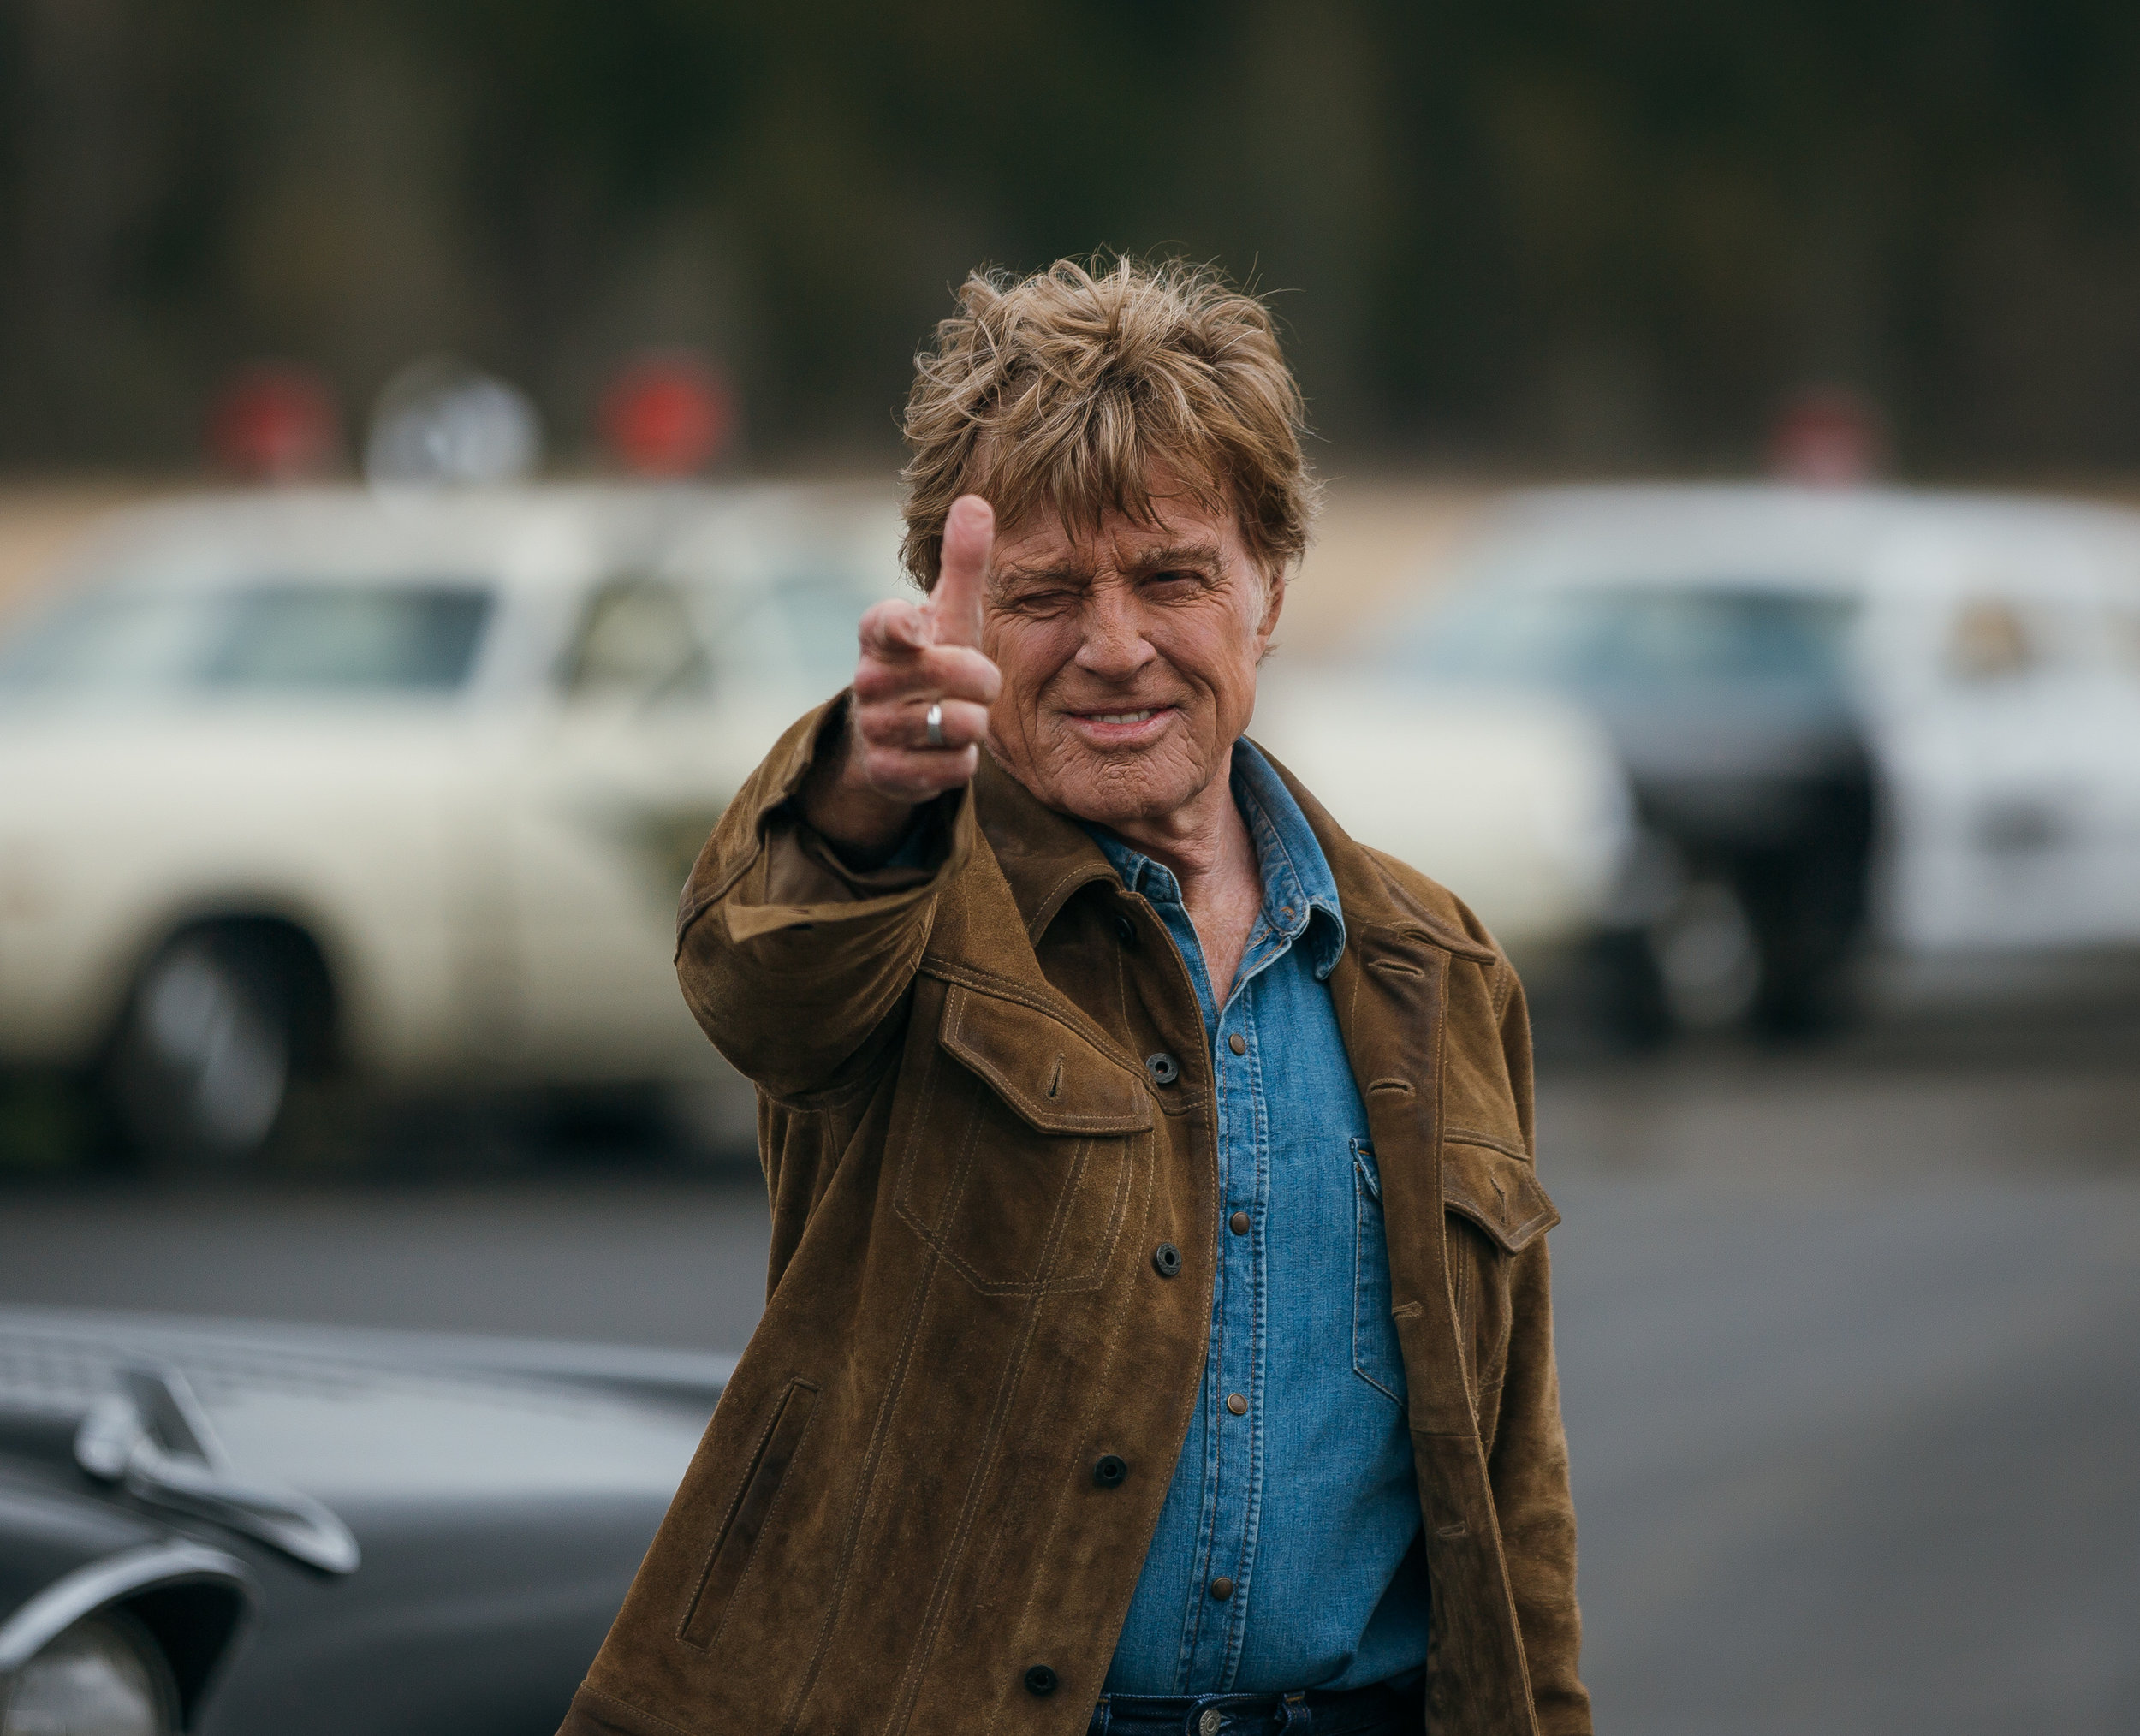 """Robert Redford plays career criminal Forrest Tucker in the heist comedy """"The Old Man & the Gun."""" (Photo courtesy Fox Searchlight Pictures)"""